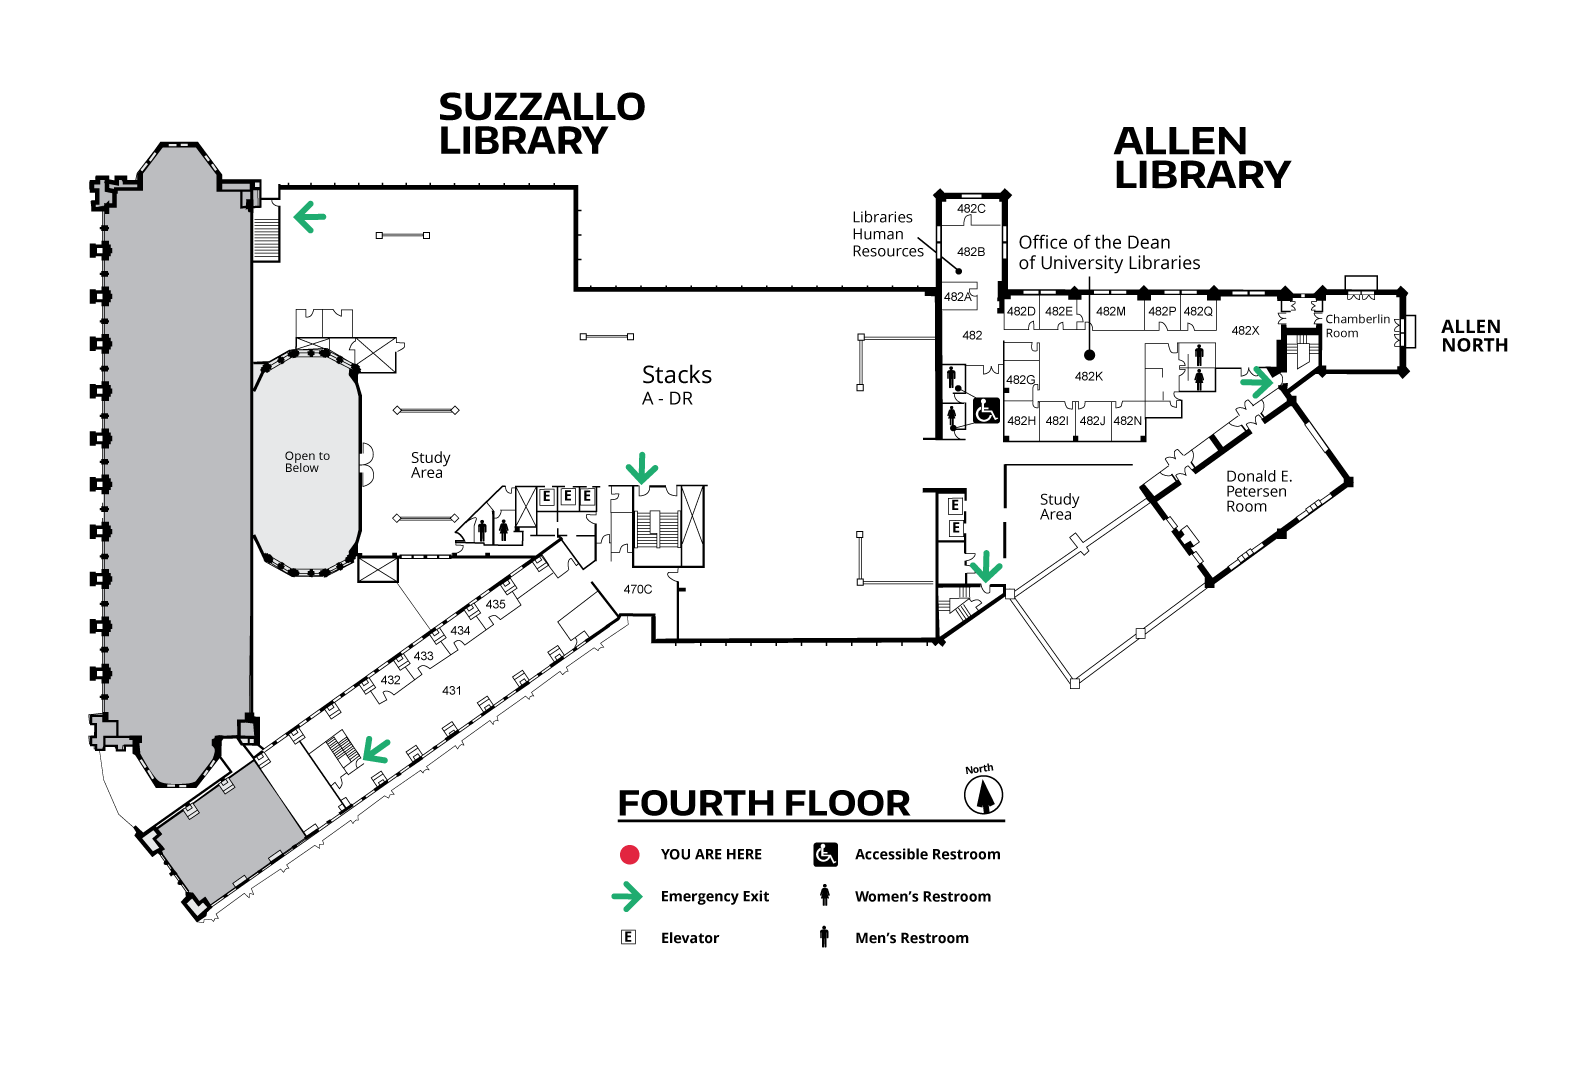 Suzzallo and Allen Fourth Floor Map